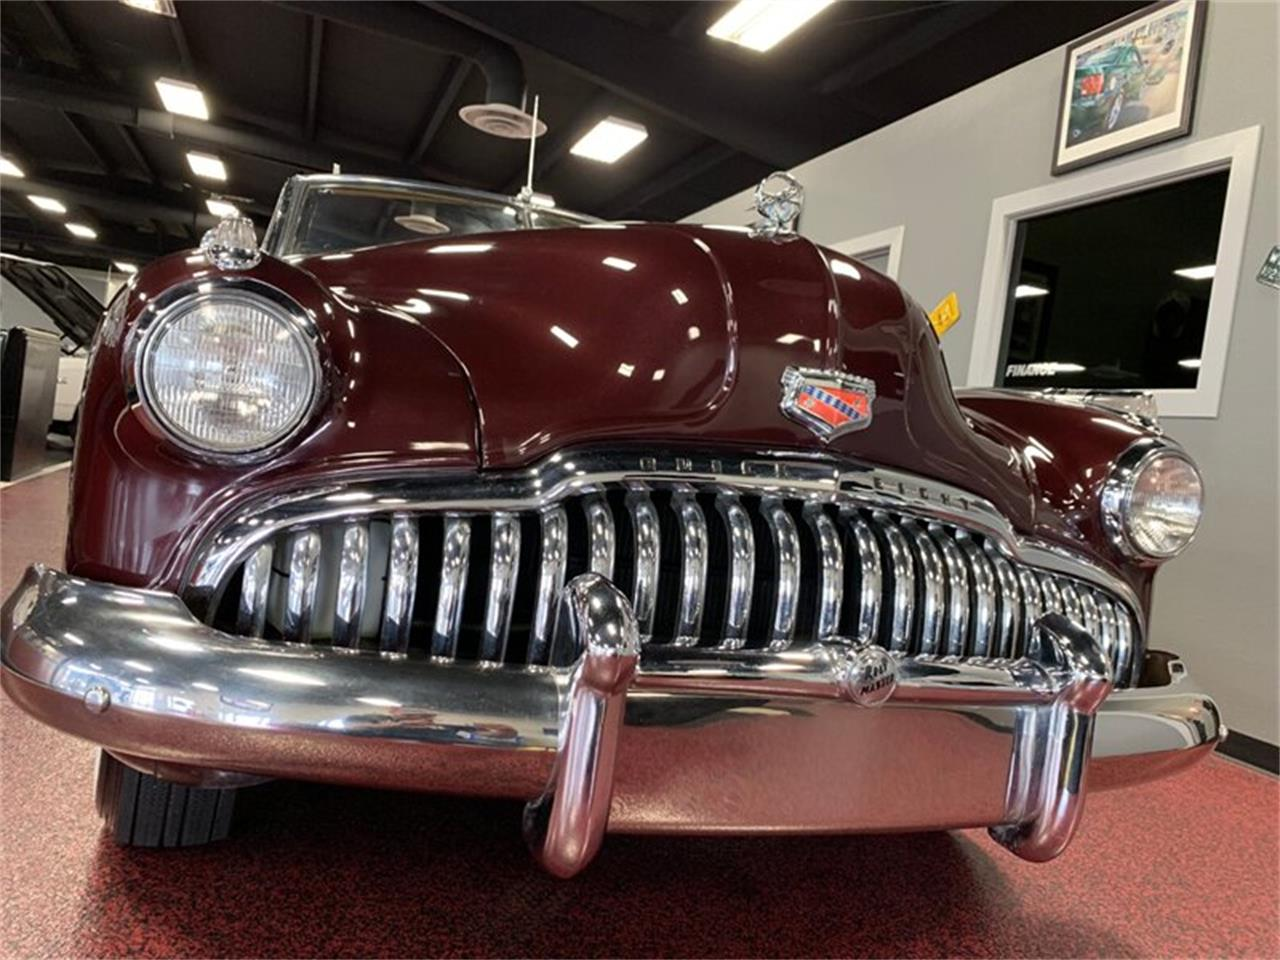 1949 Buick Roadmaster for sale in Bismarck, ND – photo 3